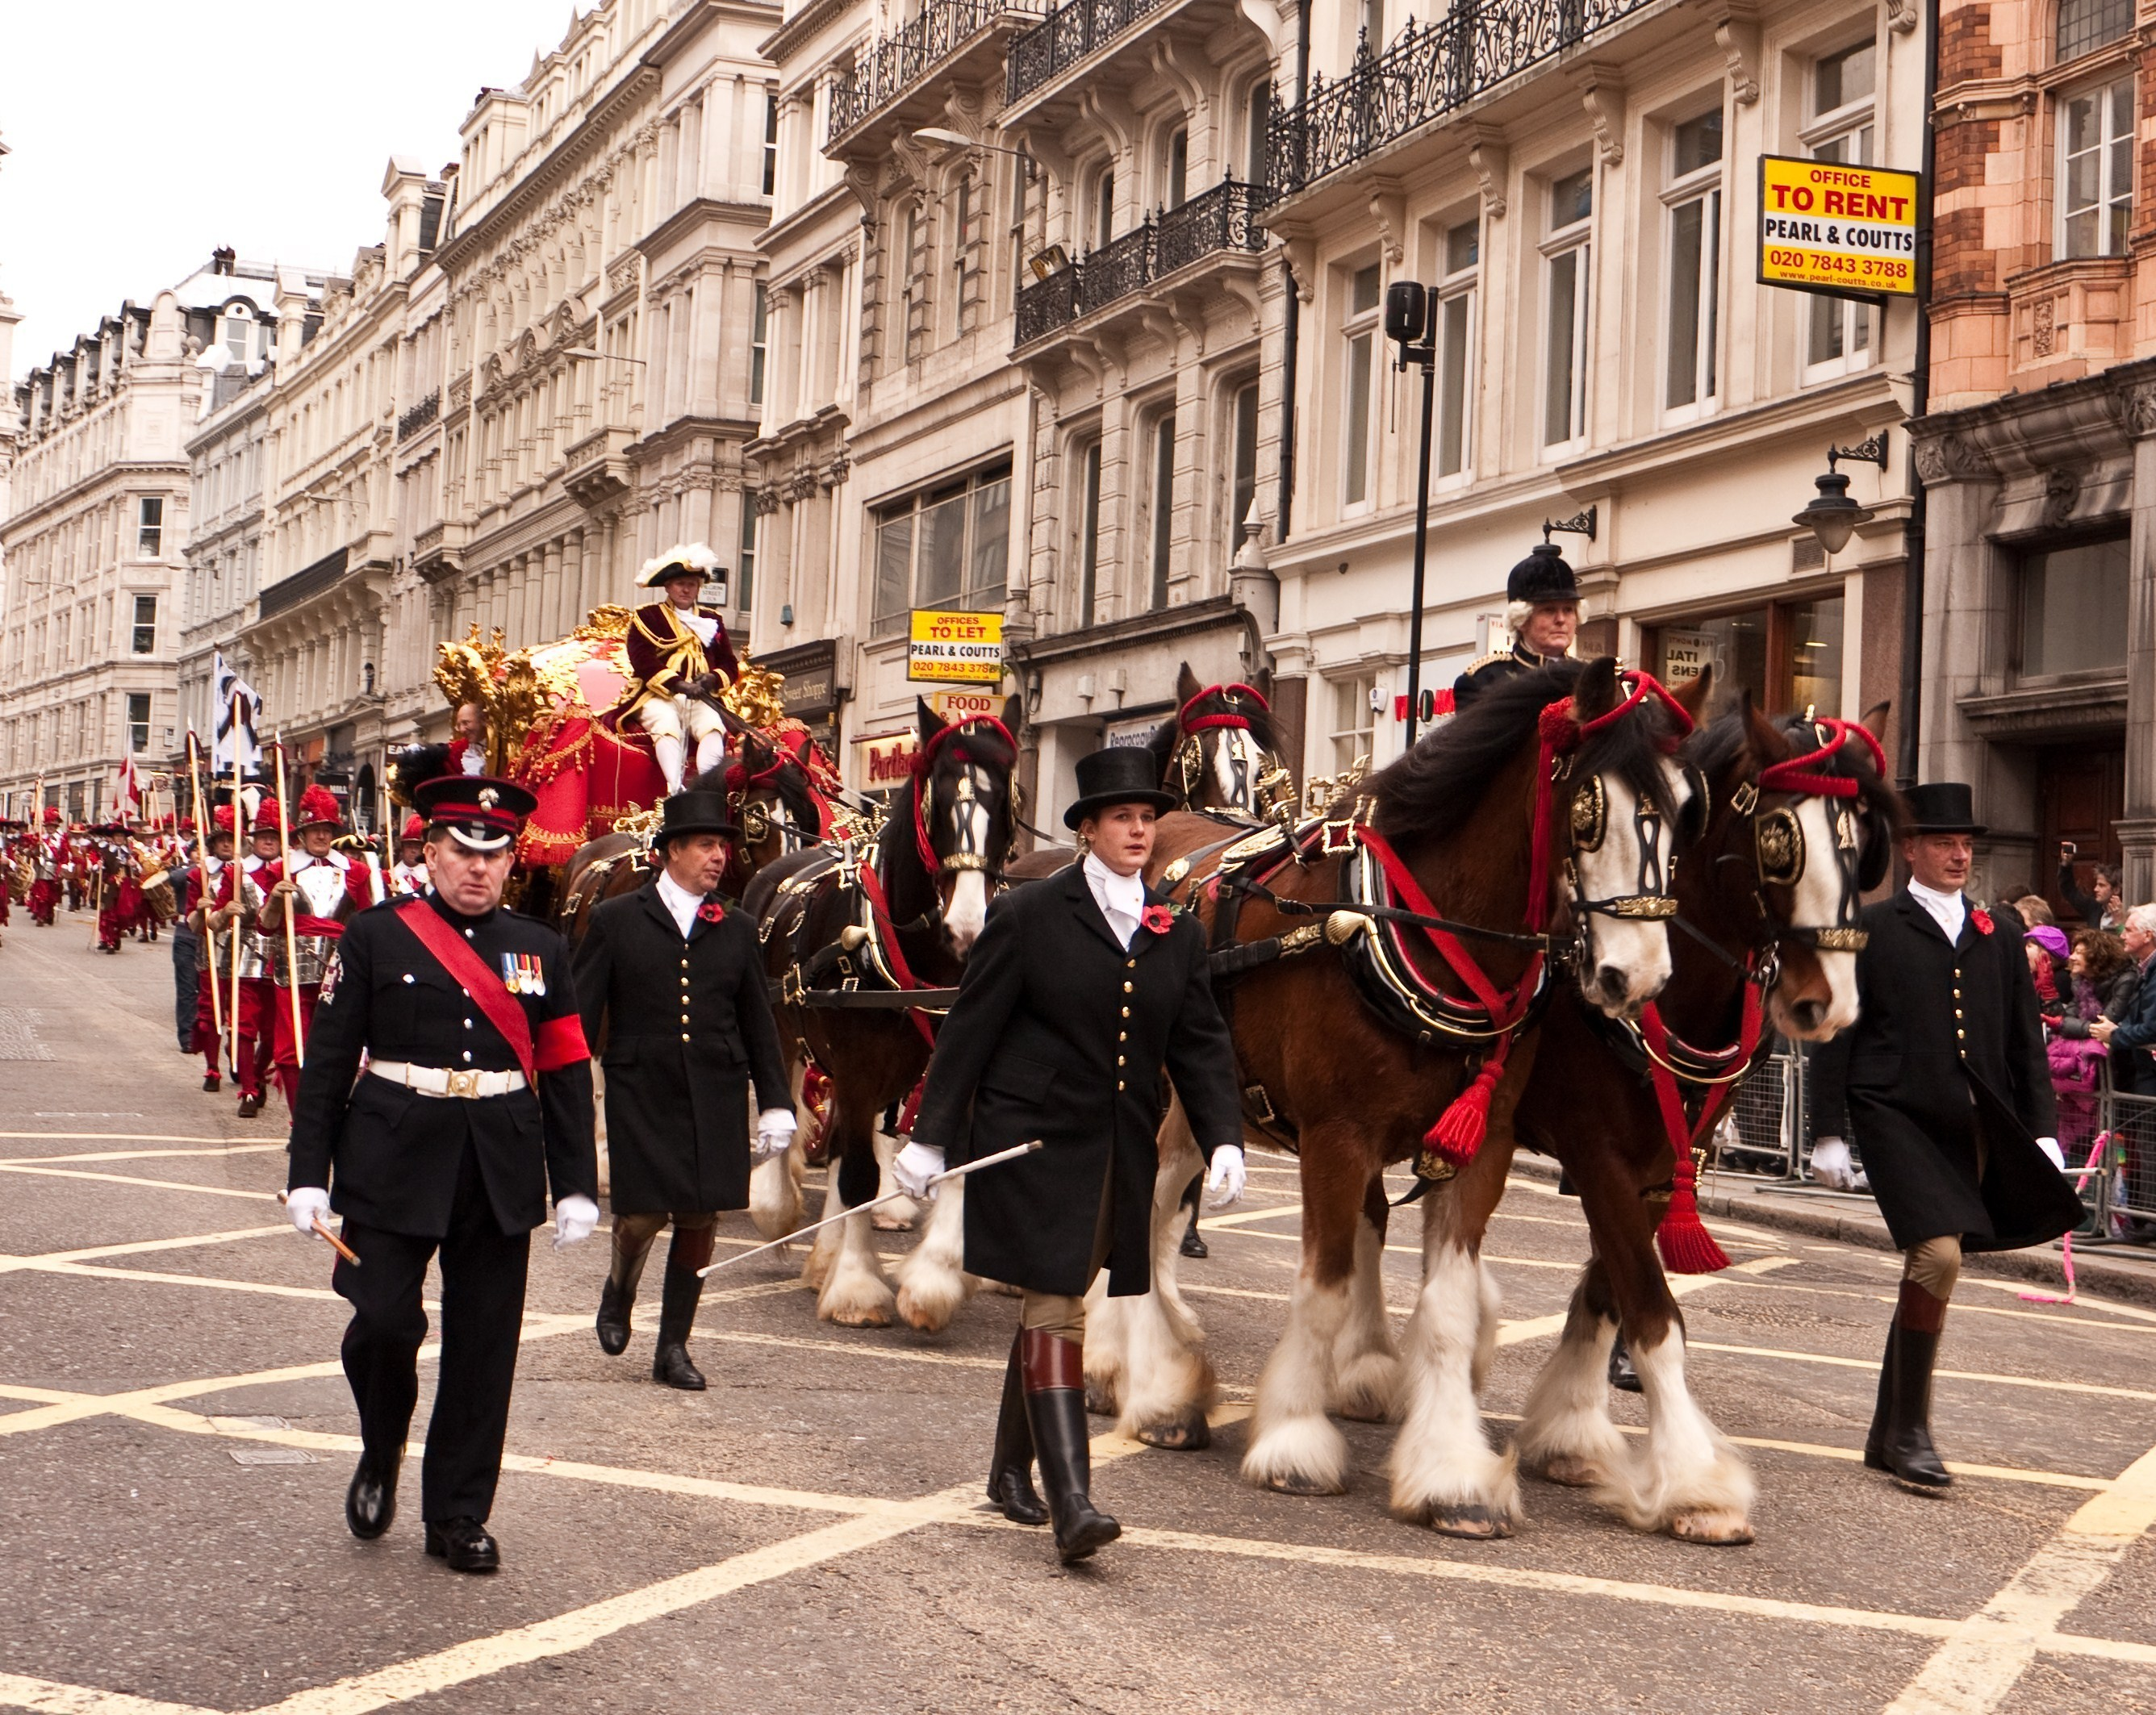 The spectacular Lord Mayor's Show